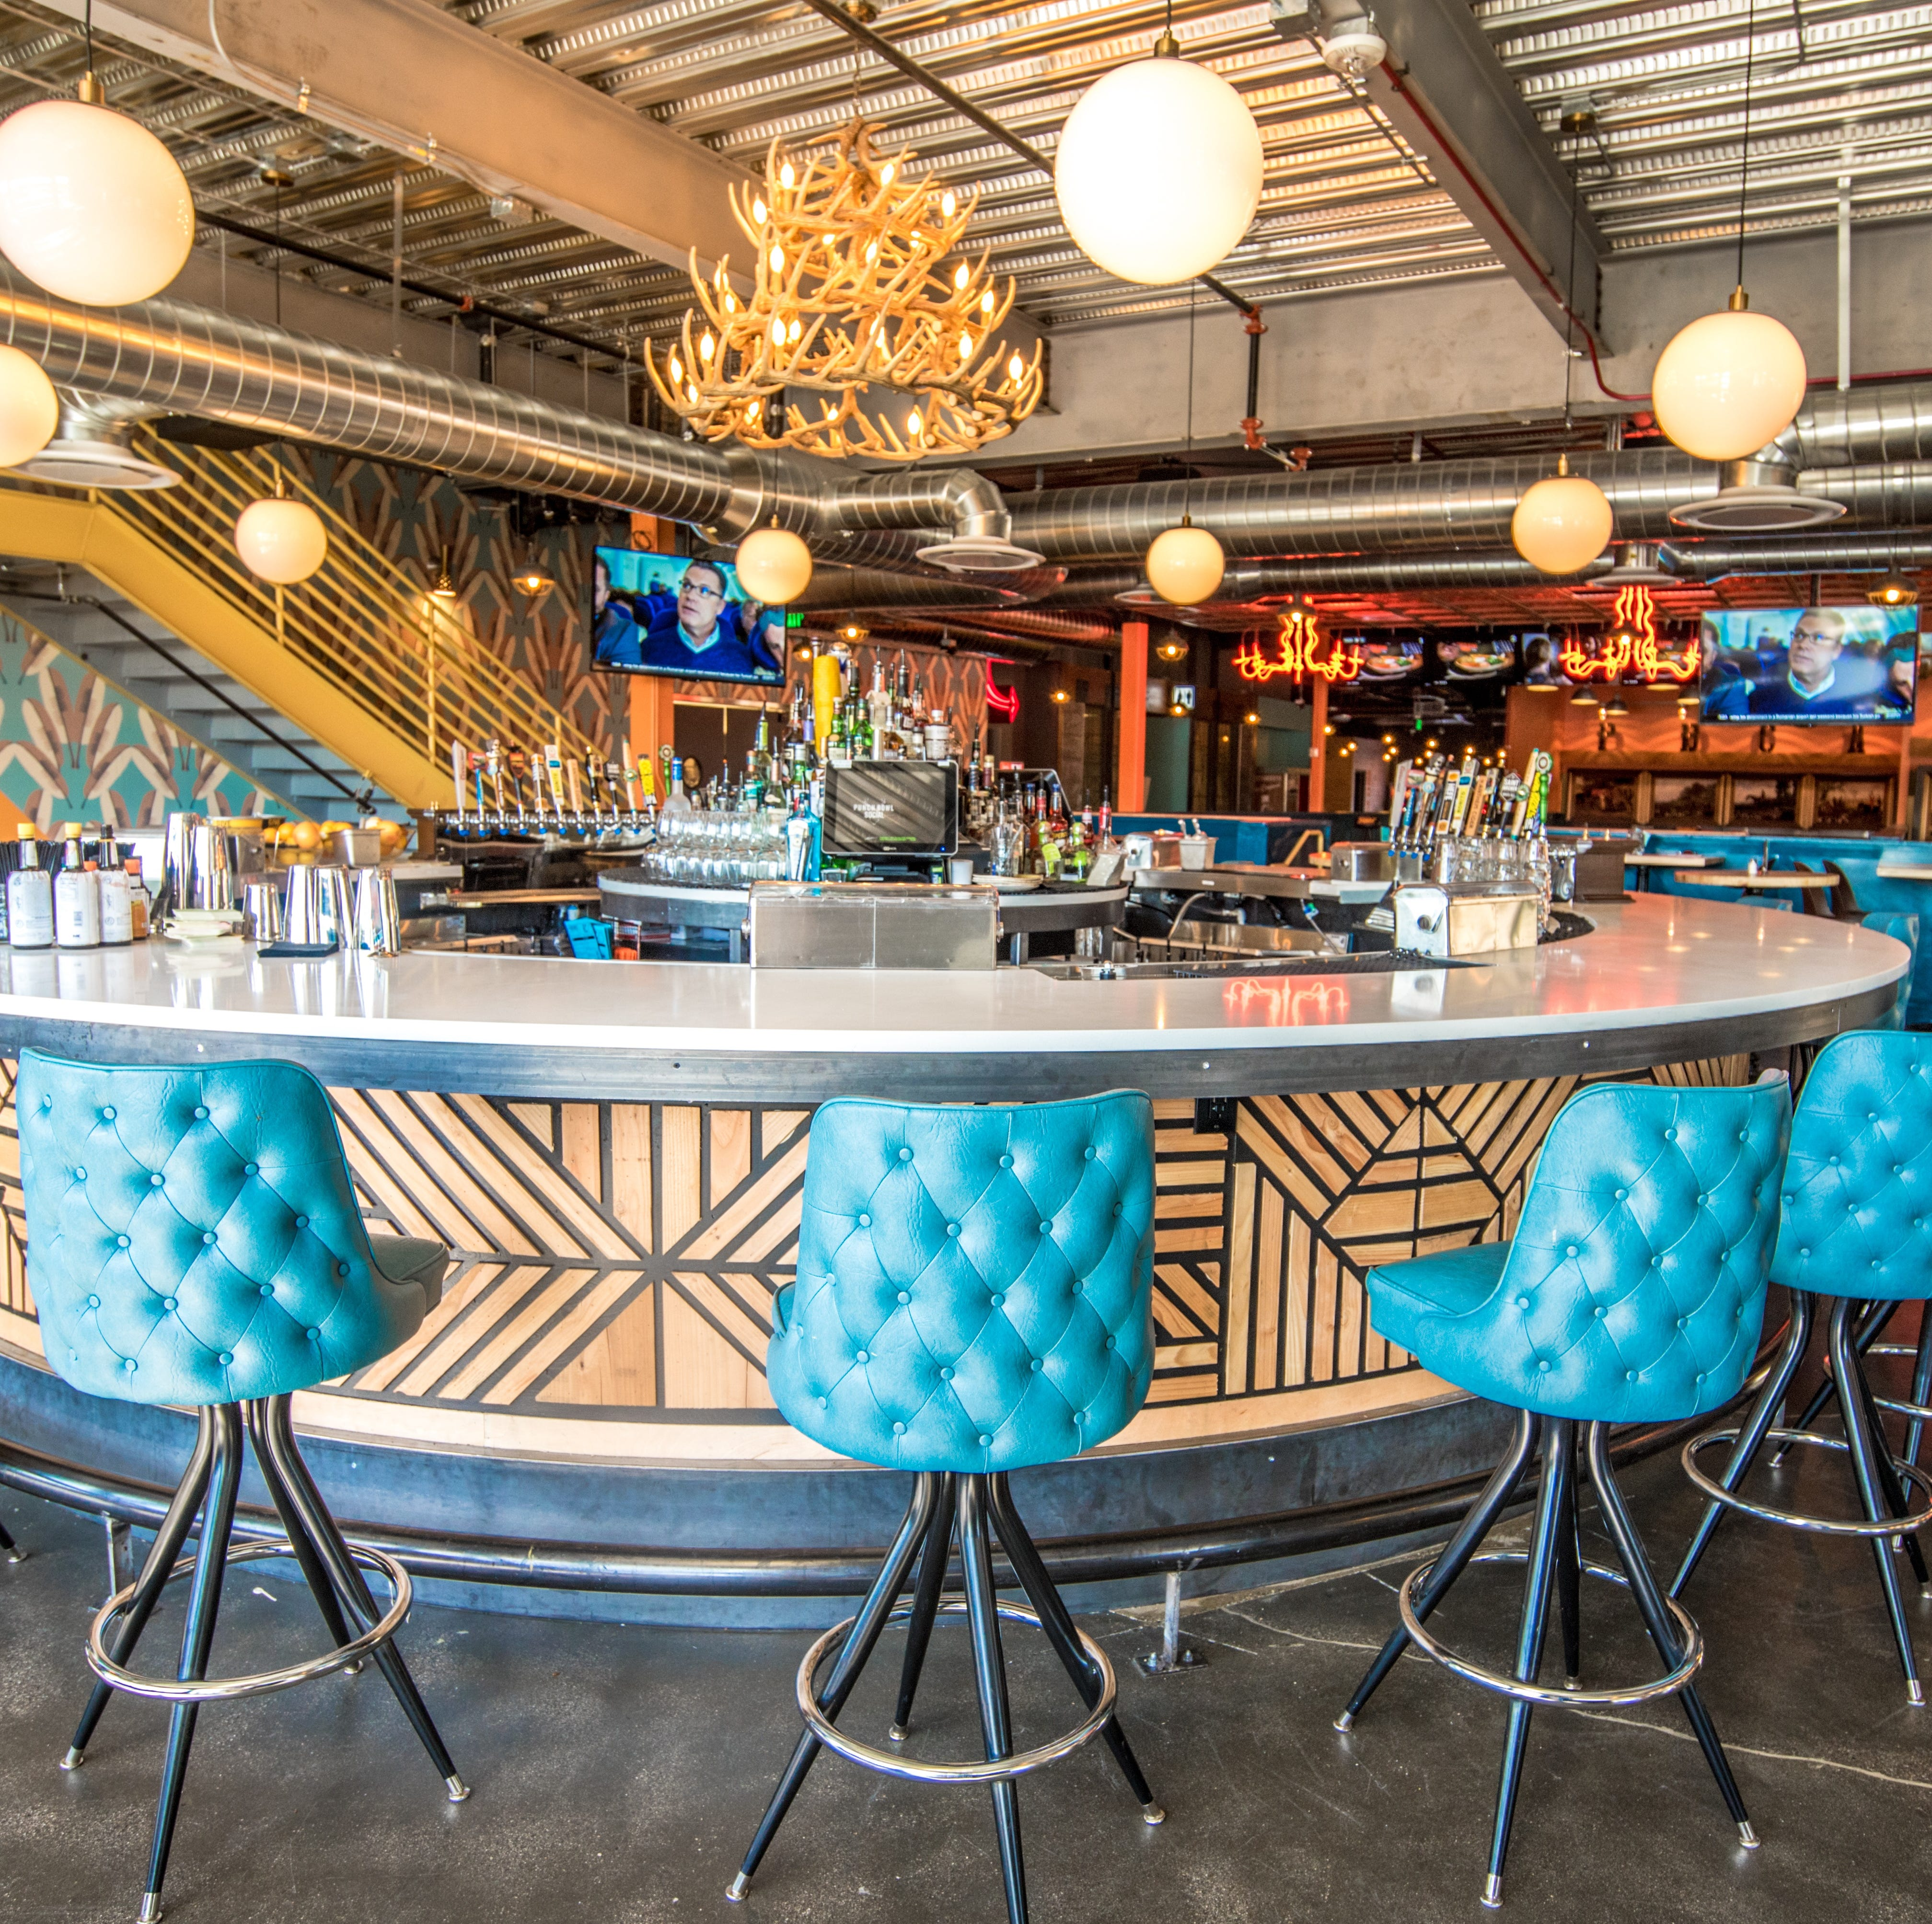 Game, eat, drink at Punch Bowl Social, coming to downtown Phoenix this fall